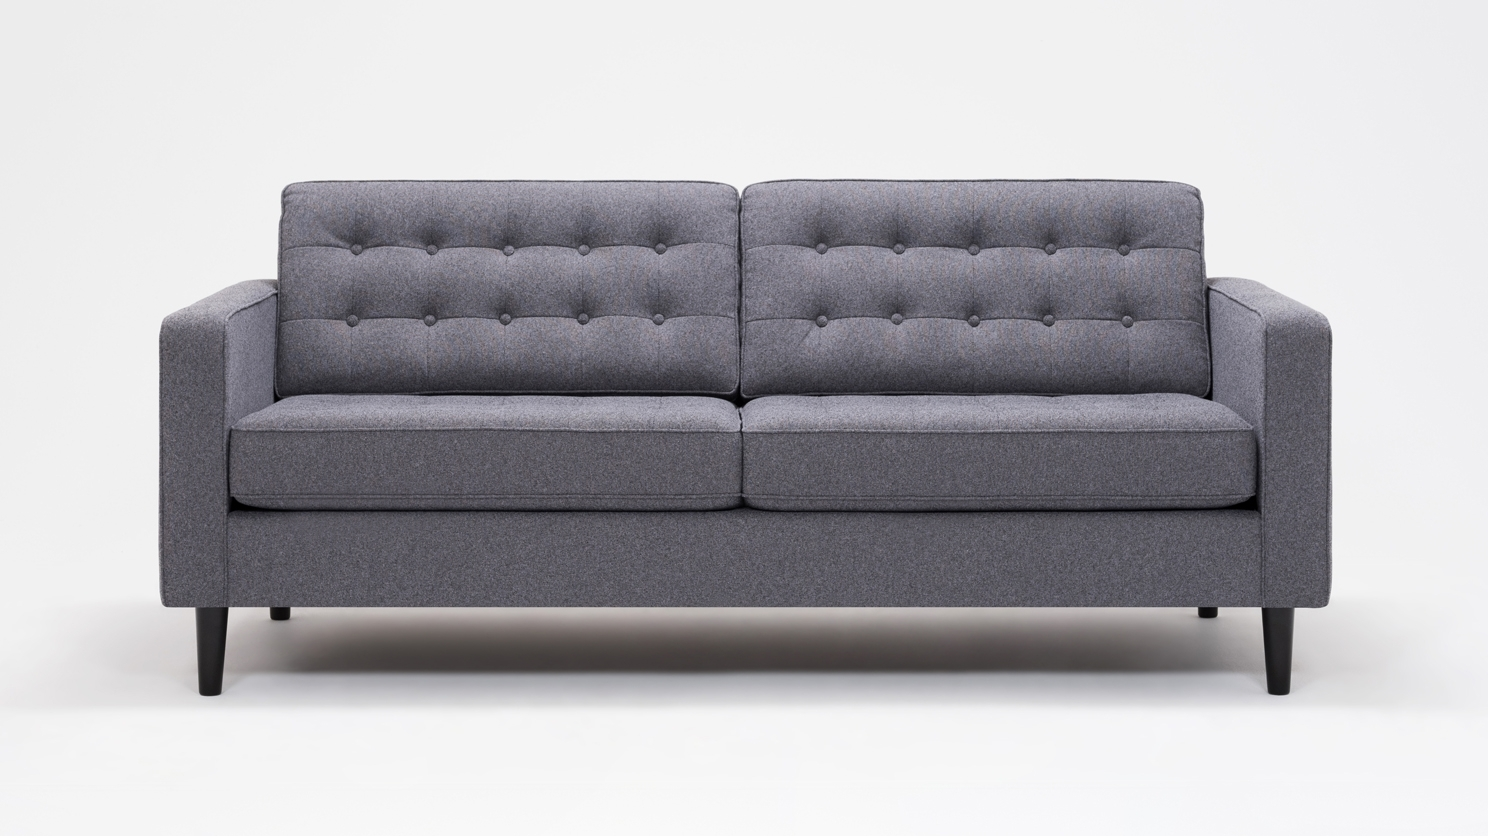 Eq3 | Reverie Apartment Sofa - Fabric within Apartment Sofas (Image 7 of 10)